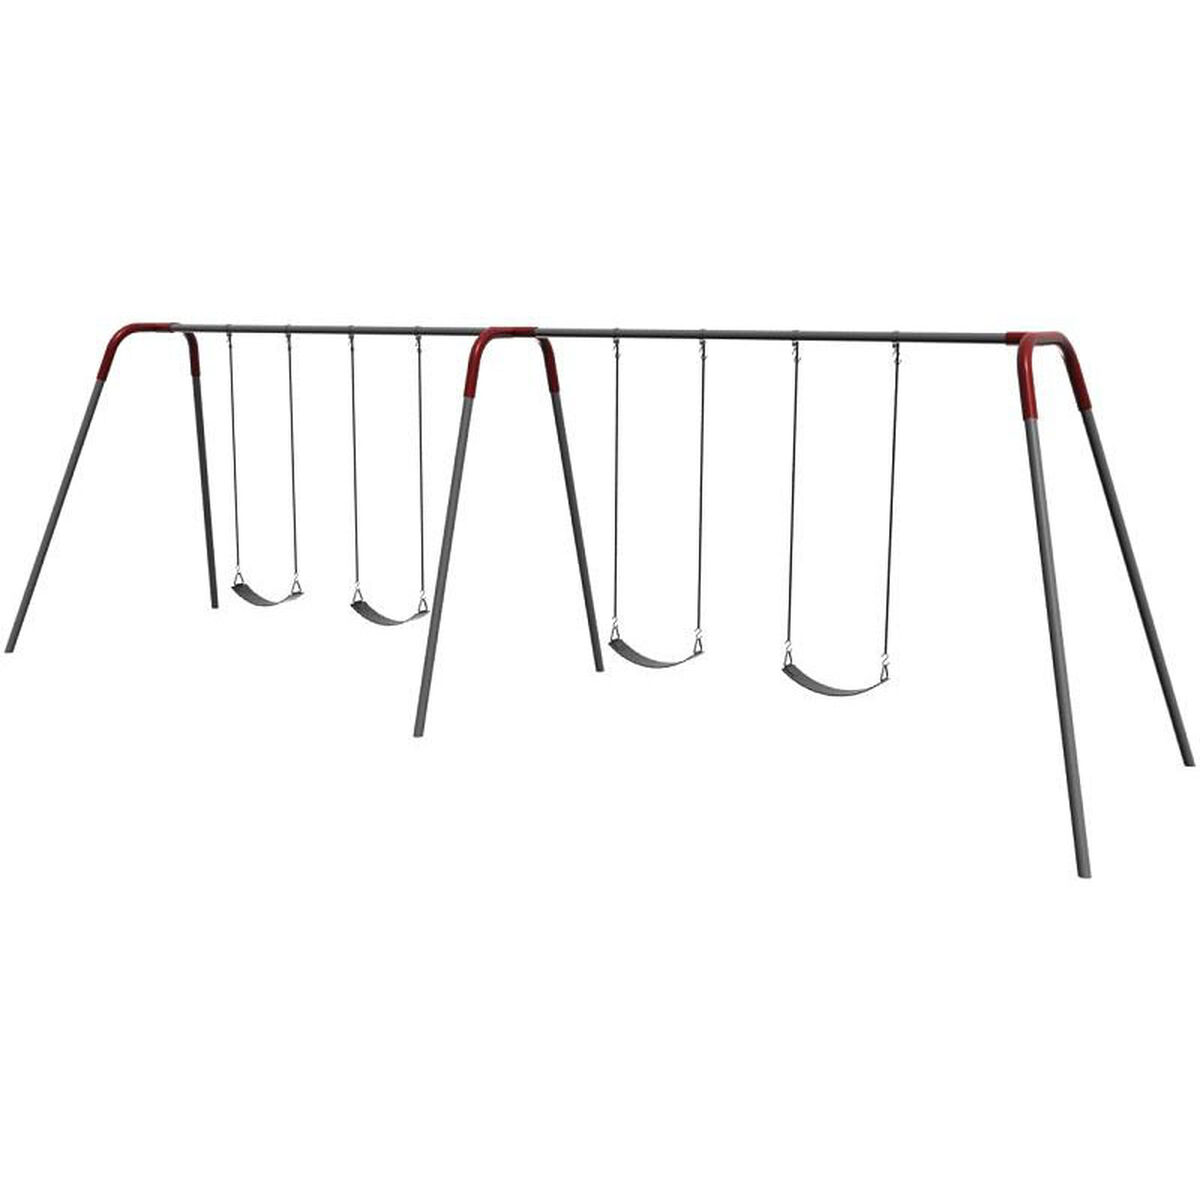 4 Seat Modern Bipod Swing Set 581-438 | ChurchChairs4Less.com